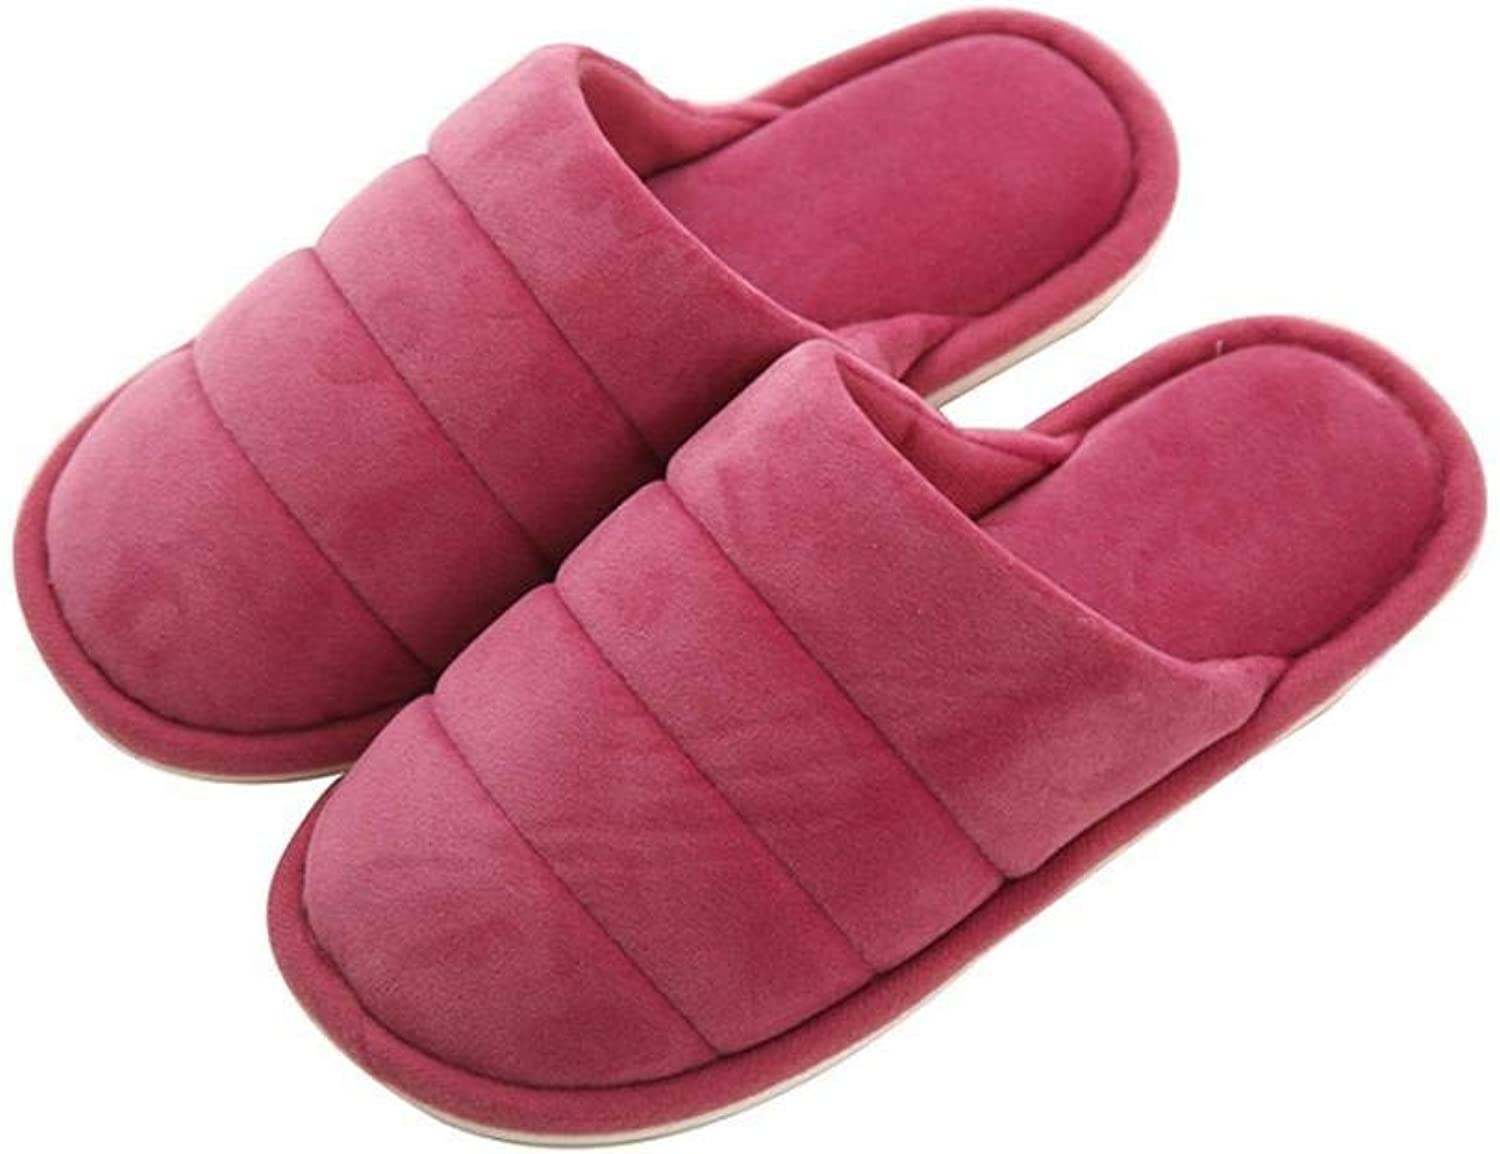 GouuoHi Womens Slippers Ladies Home Non-Slip Breathable Super Soft Slippers Autumn and Winter Indoor and Outdoor Solid color Classic Basic Cotton Slippers